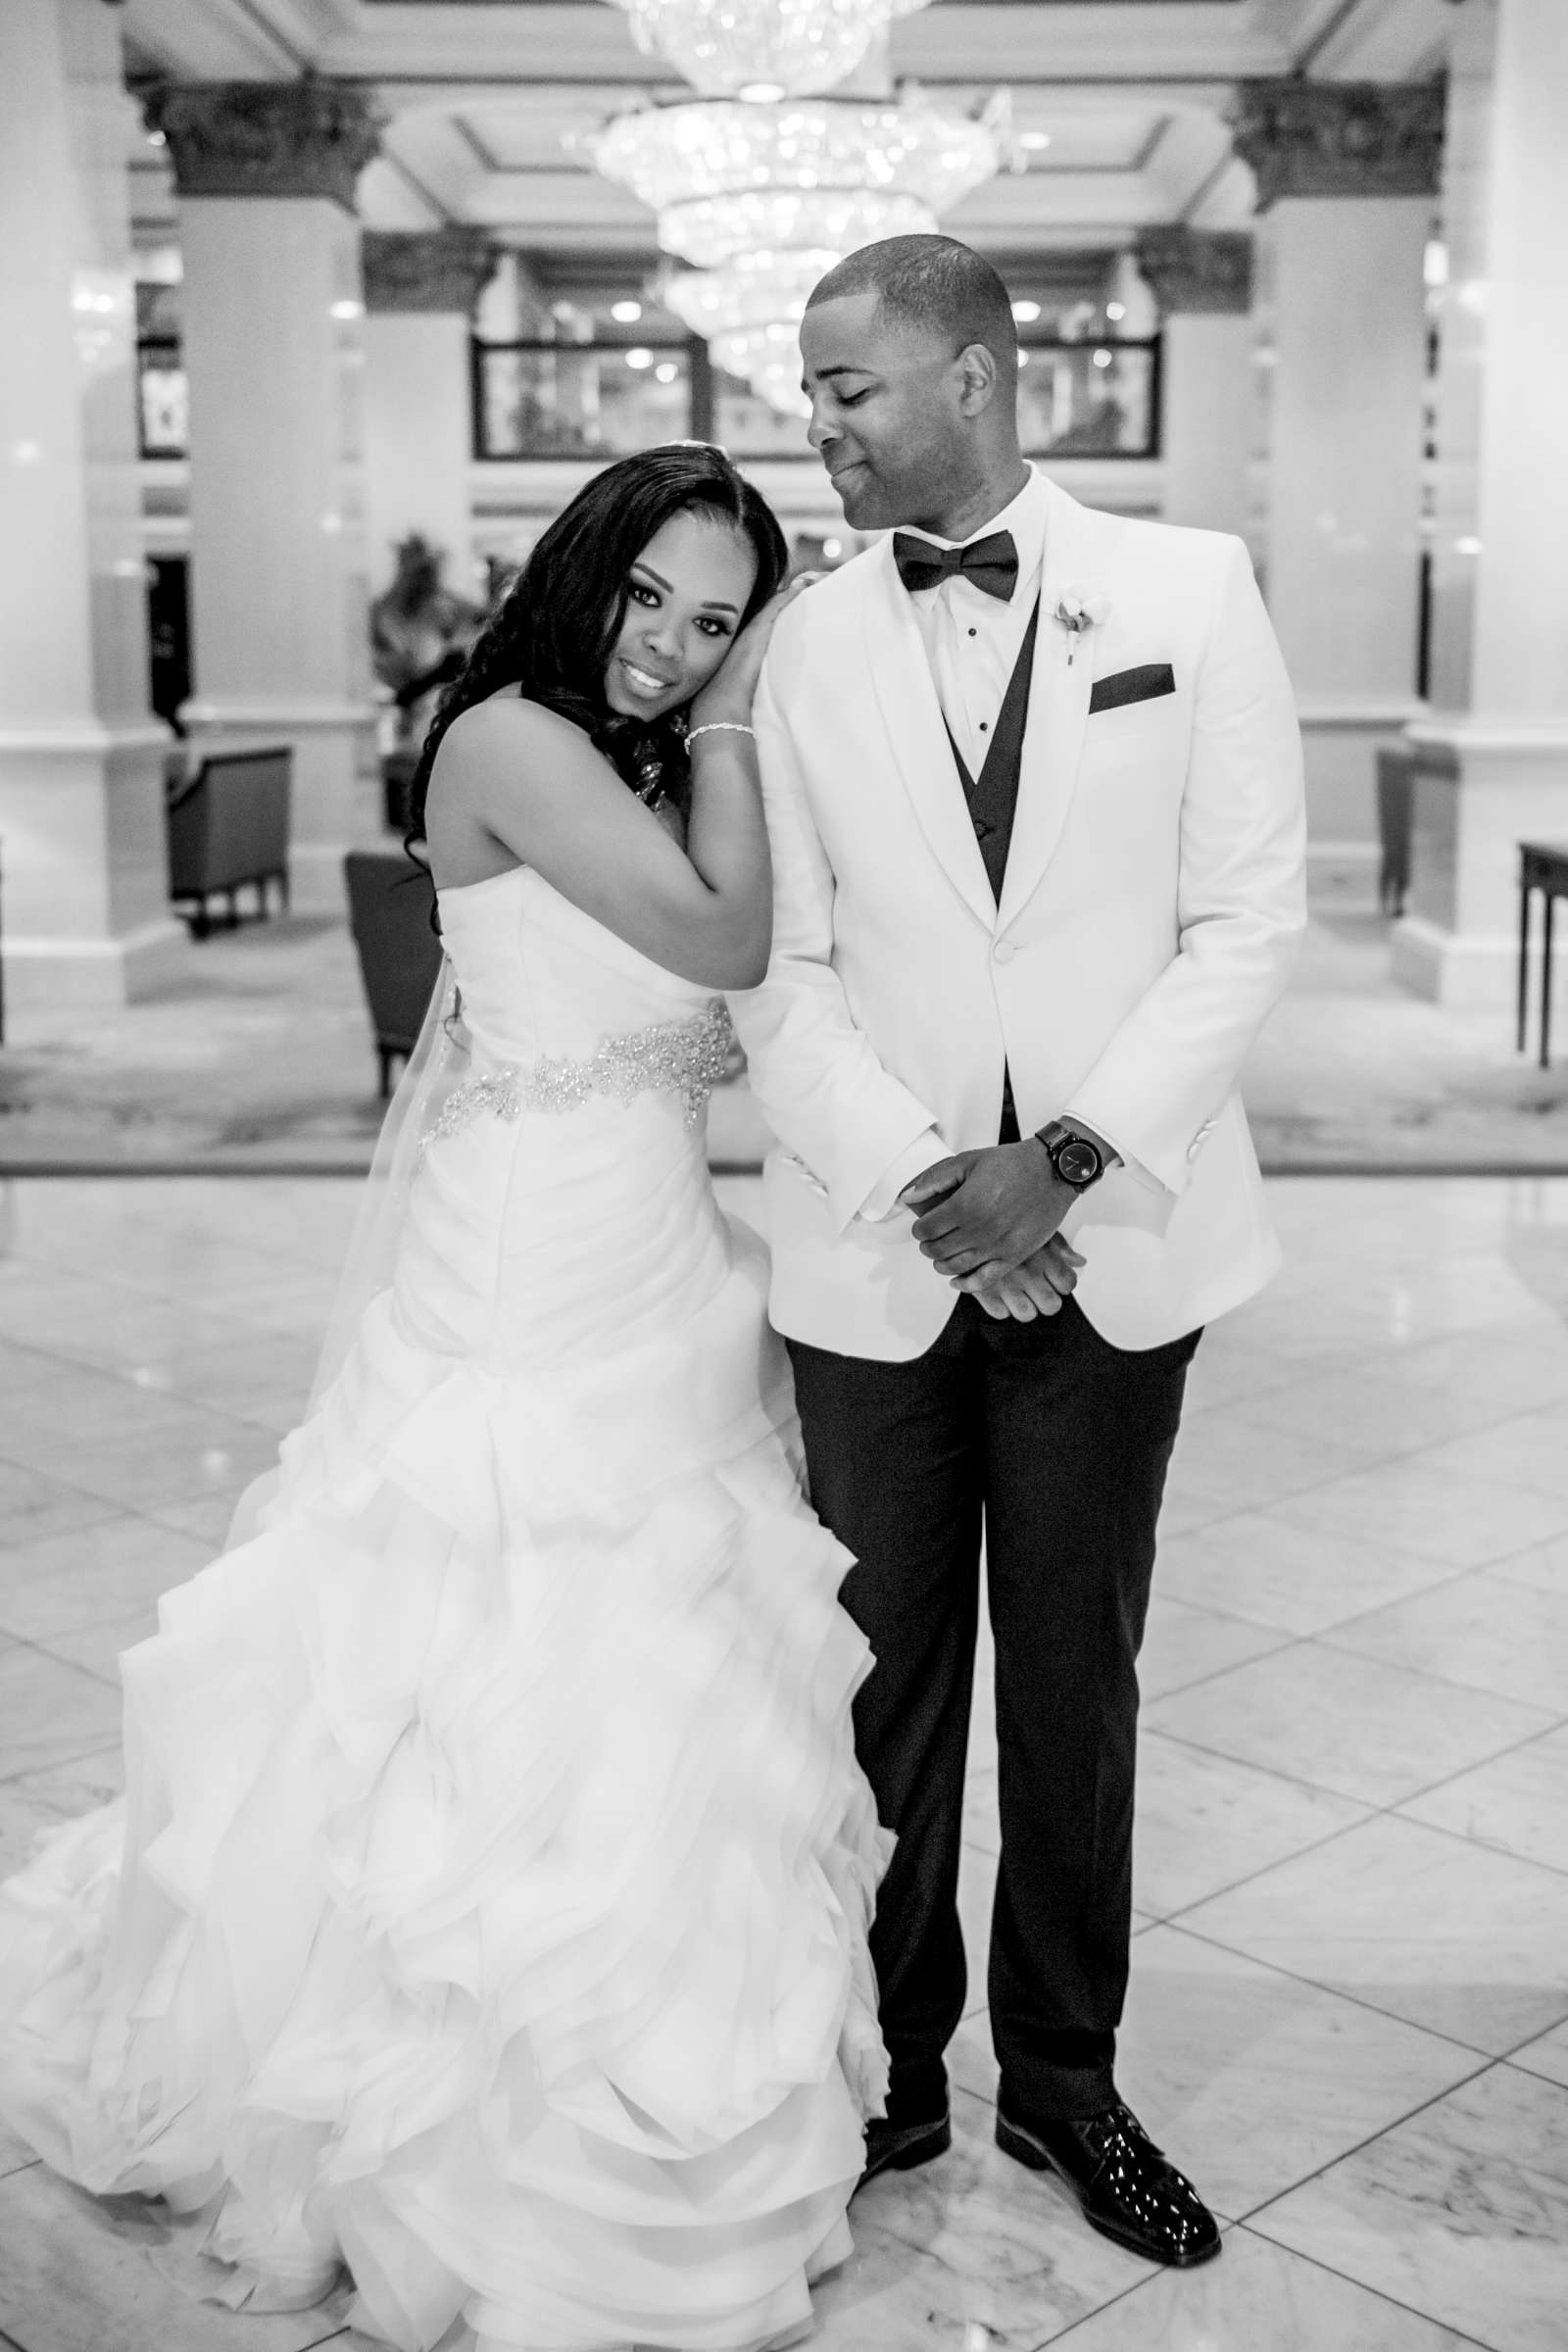 Coronado Community Center Wedding coordinated by First Comes Love Weddings & Events, Nikia and Charles Wedding Photo #43 by True Photography